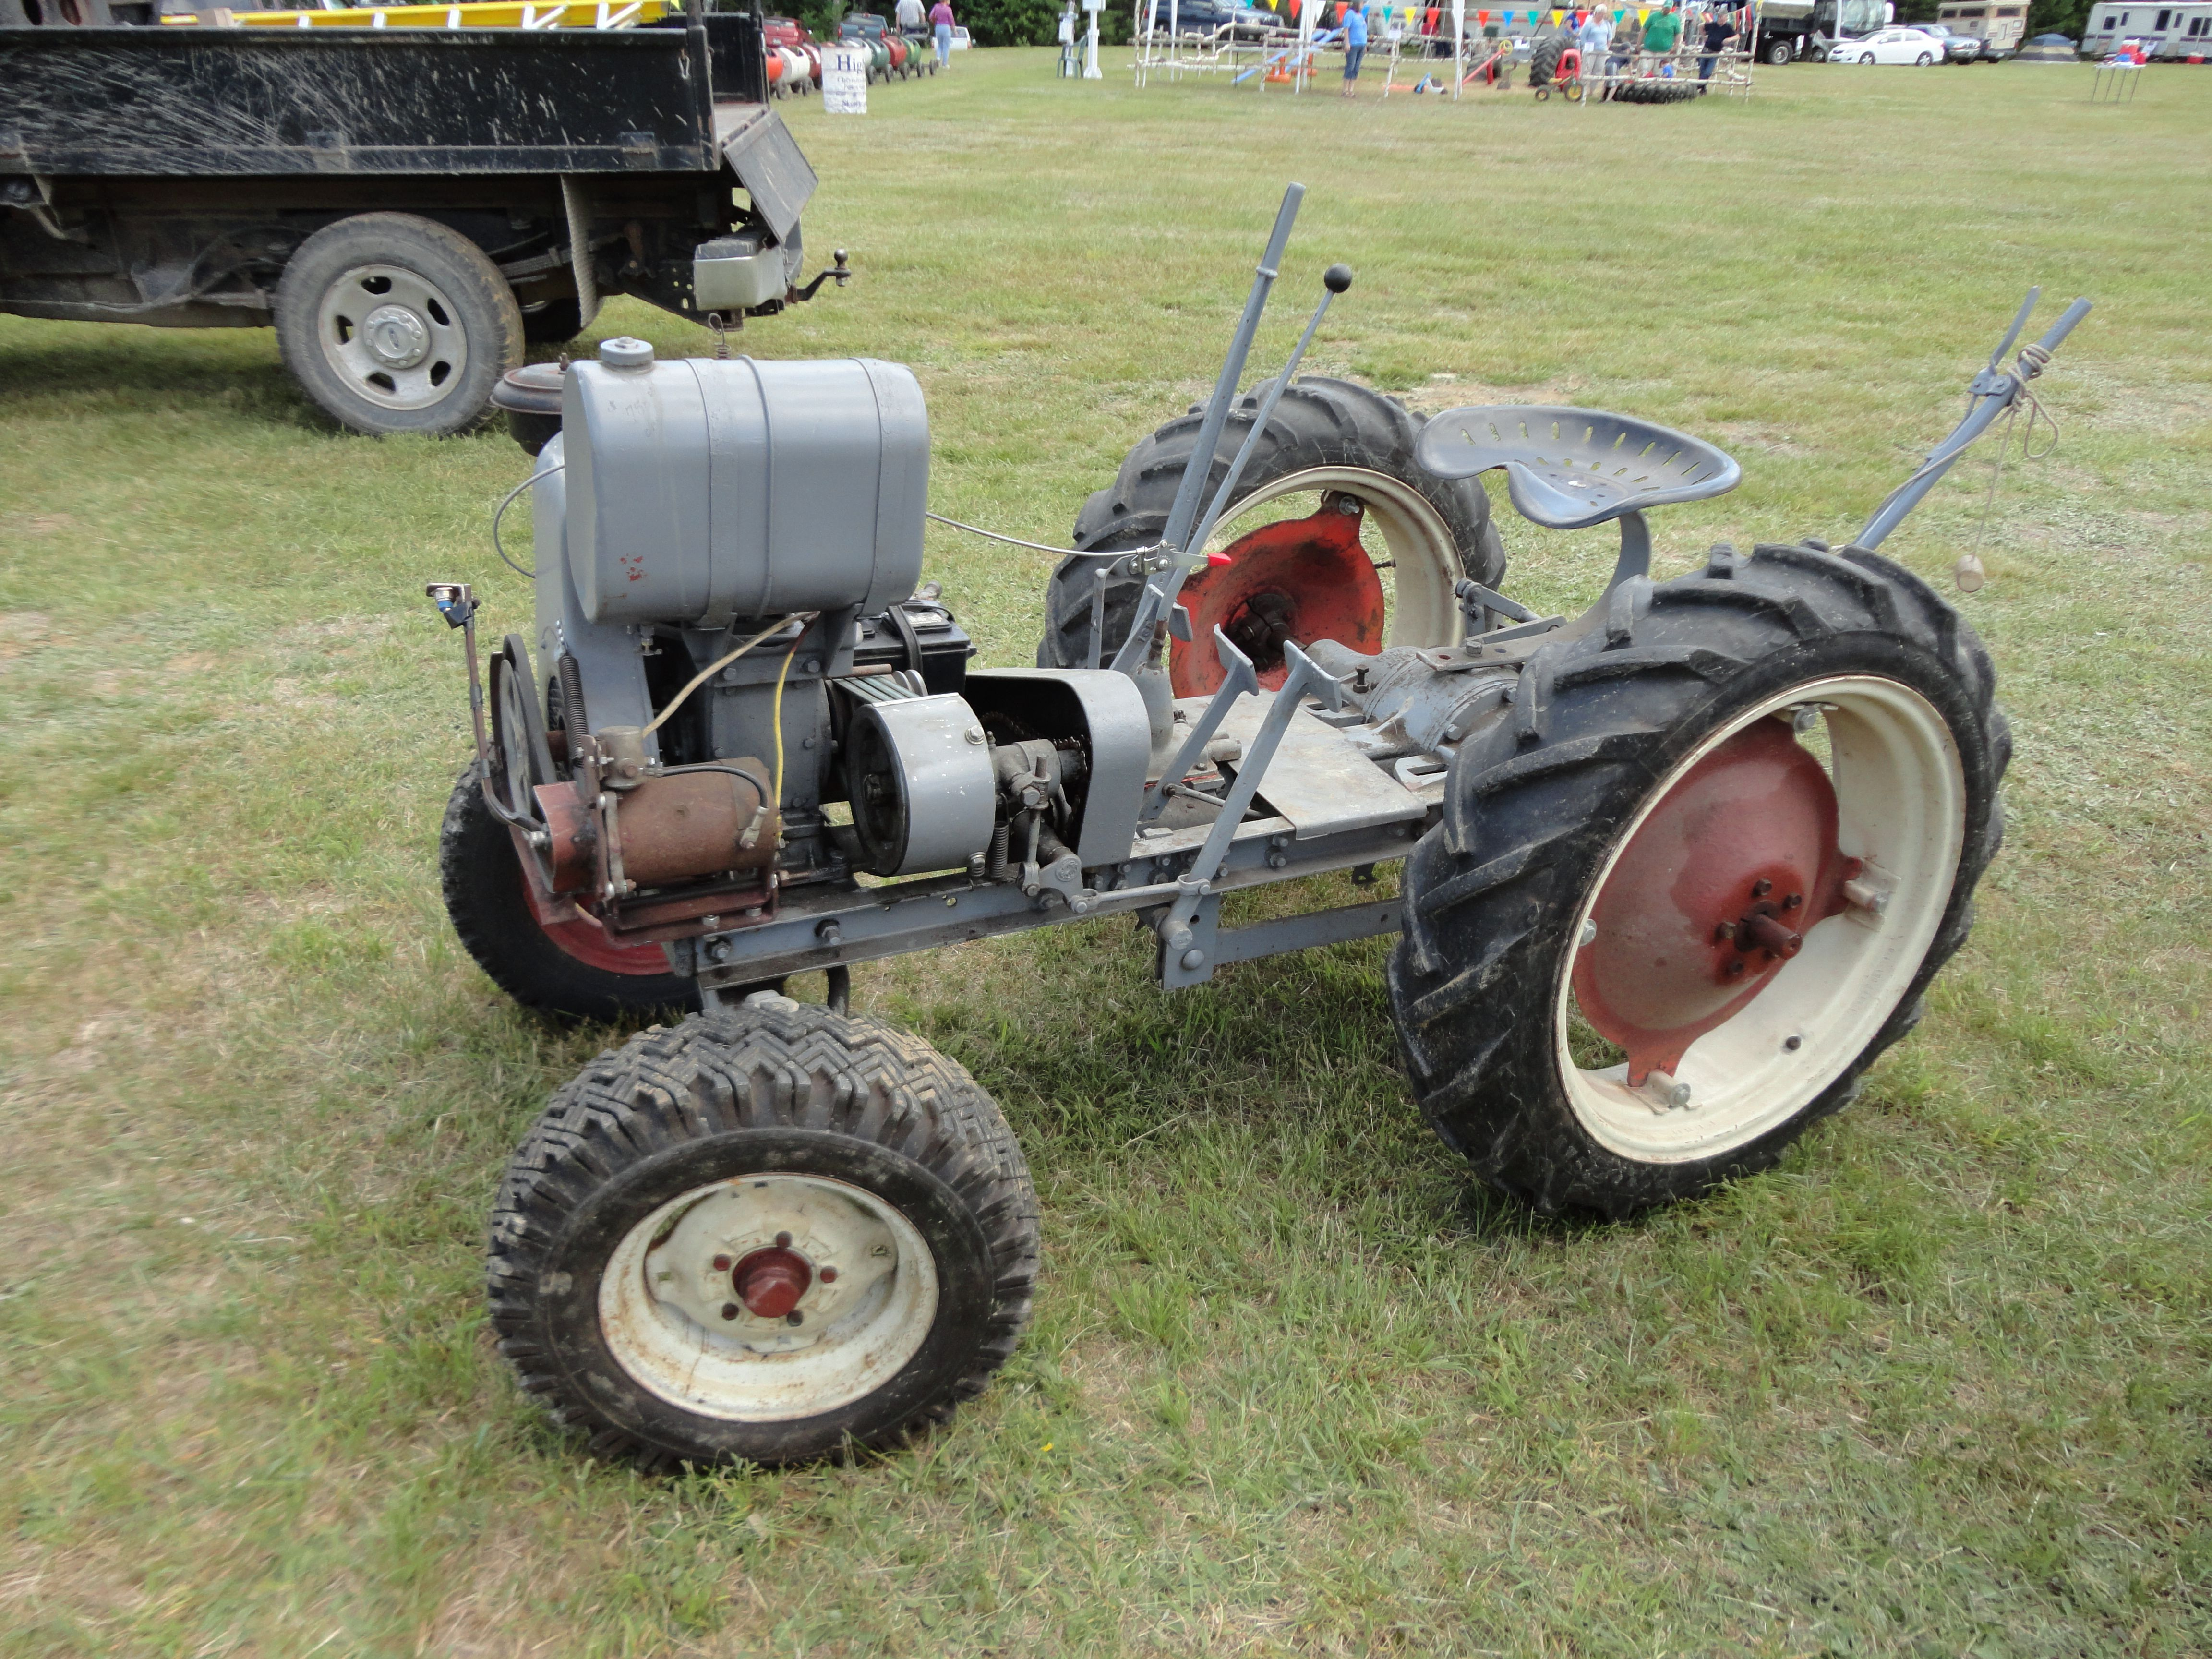 300 Gibson Tractor Looks Like Something That Was Built In A Backyard With Leftover Parts Tractors Antique Tractors Vintage Tractors